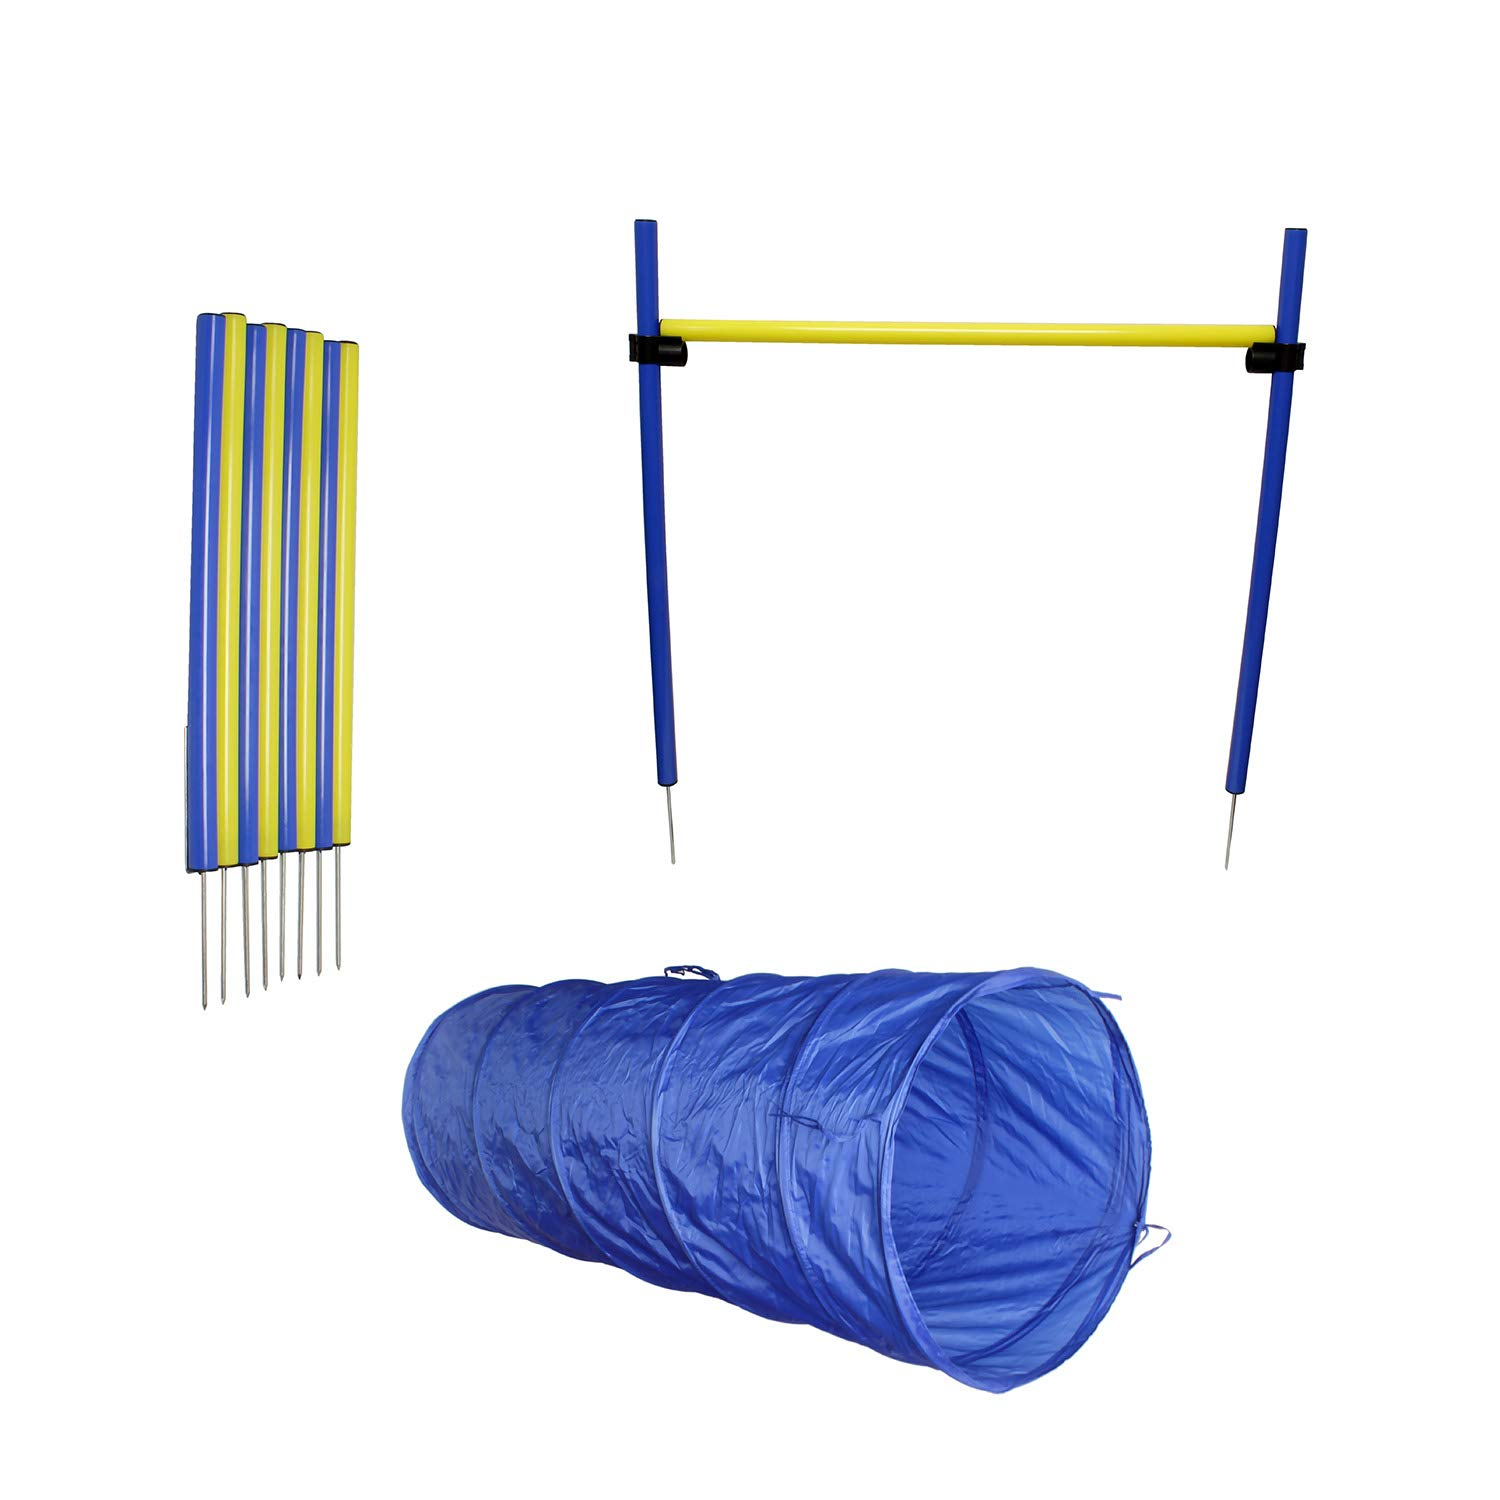 MiMu | Dog Agility Equipment Set, Dog Obstacle Course Equipment with Dog Agility Tunnel, Weave Poles, Dog Agility Jump by MiMu